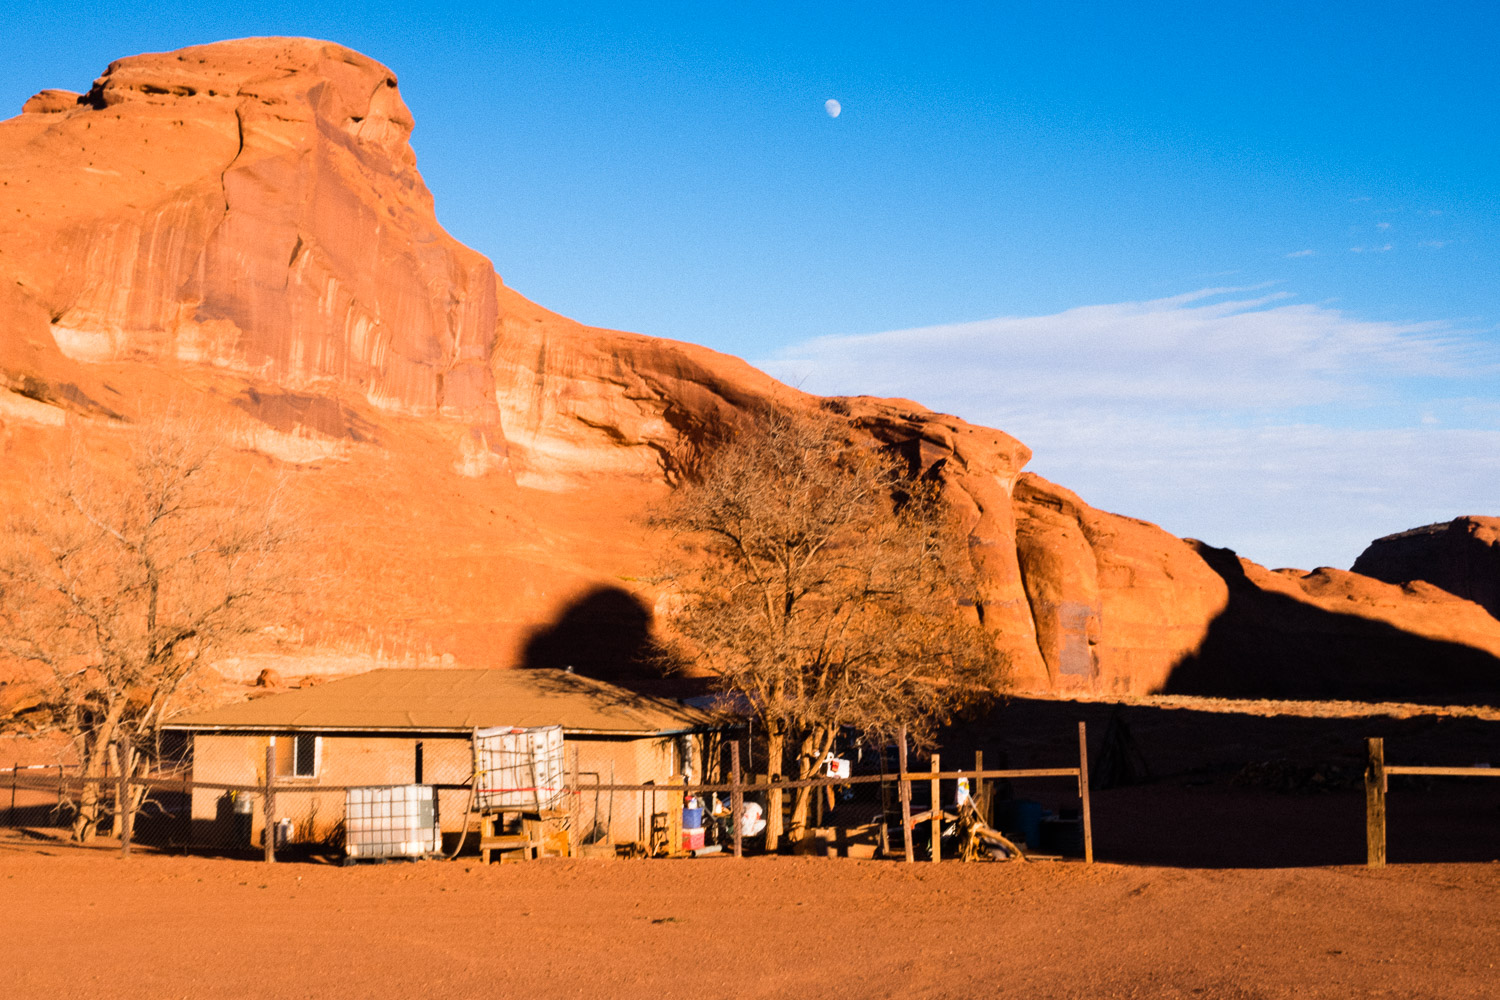 A small Navajo settlement in the valley. There are several hundred people who's ancestral homes are here and still dwell among the sandstone, mostly subsisting off what they make from selling traditional crafts to visitors. I bought sone beautiful silver and topaz jewelry for my Mom and sisters.